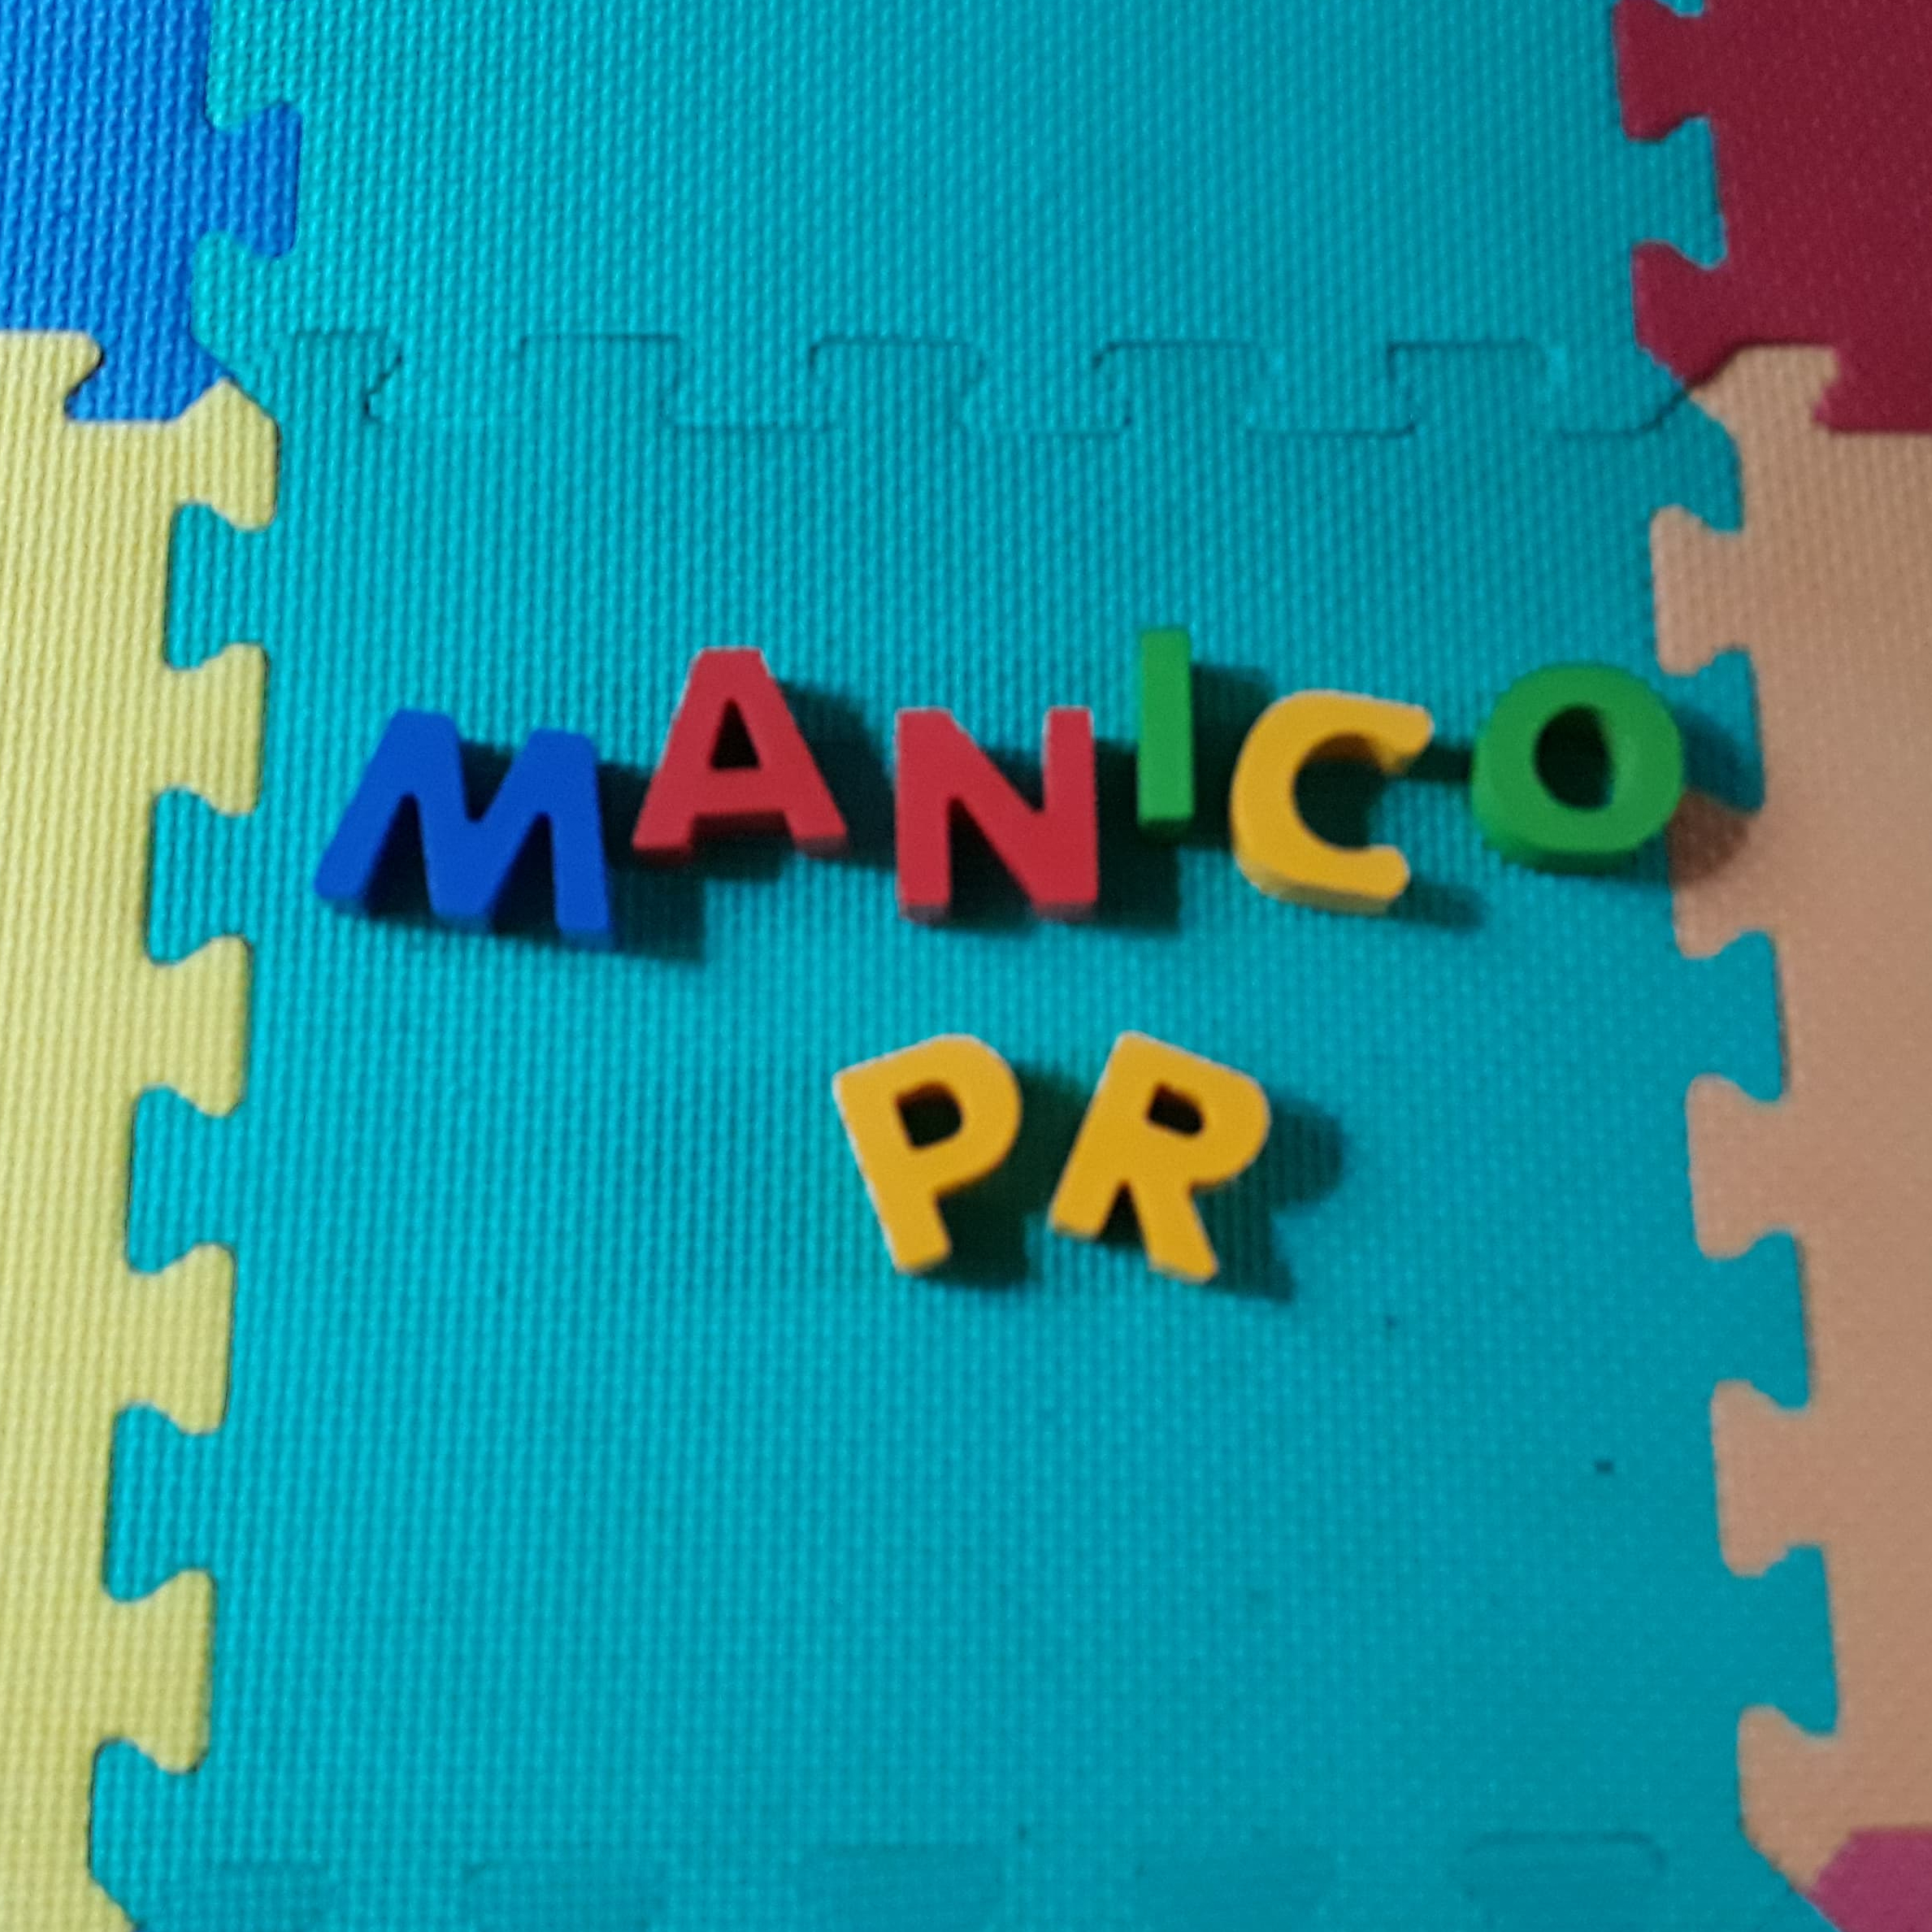 'Manico PR' spelt out with child's toy letters